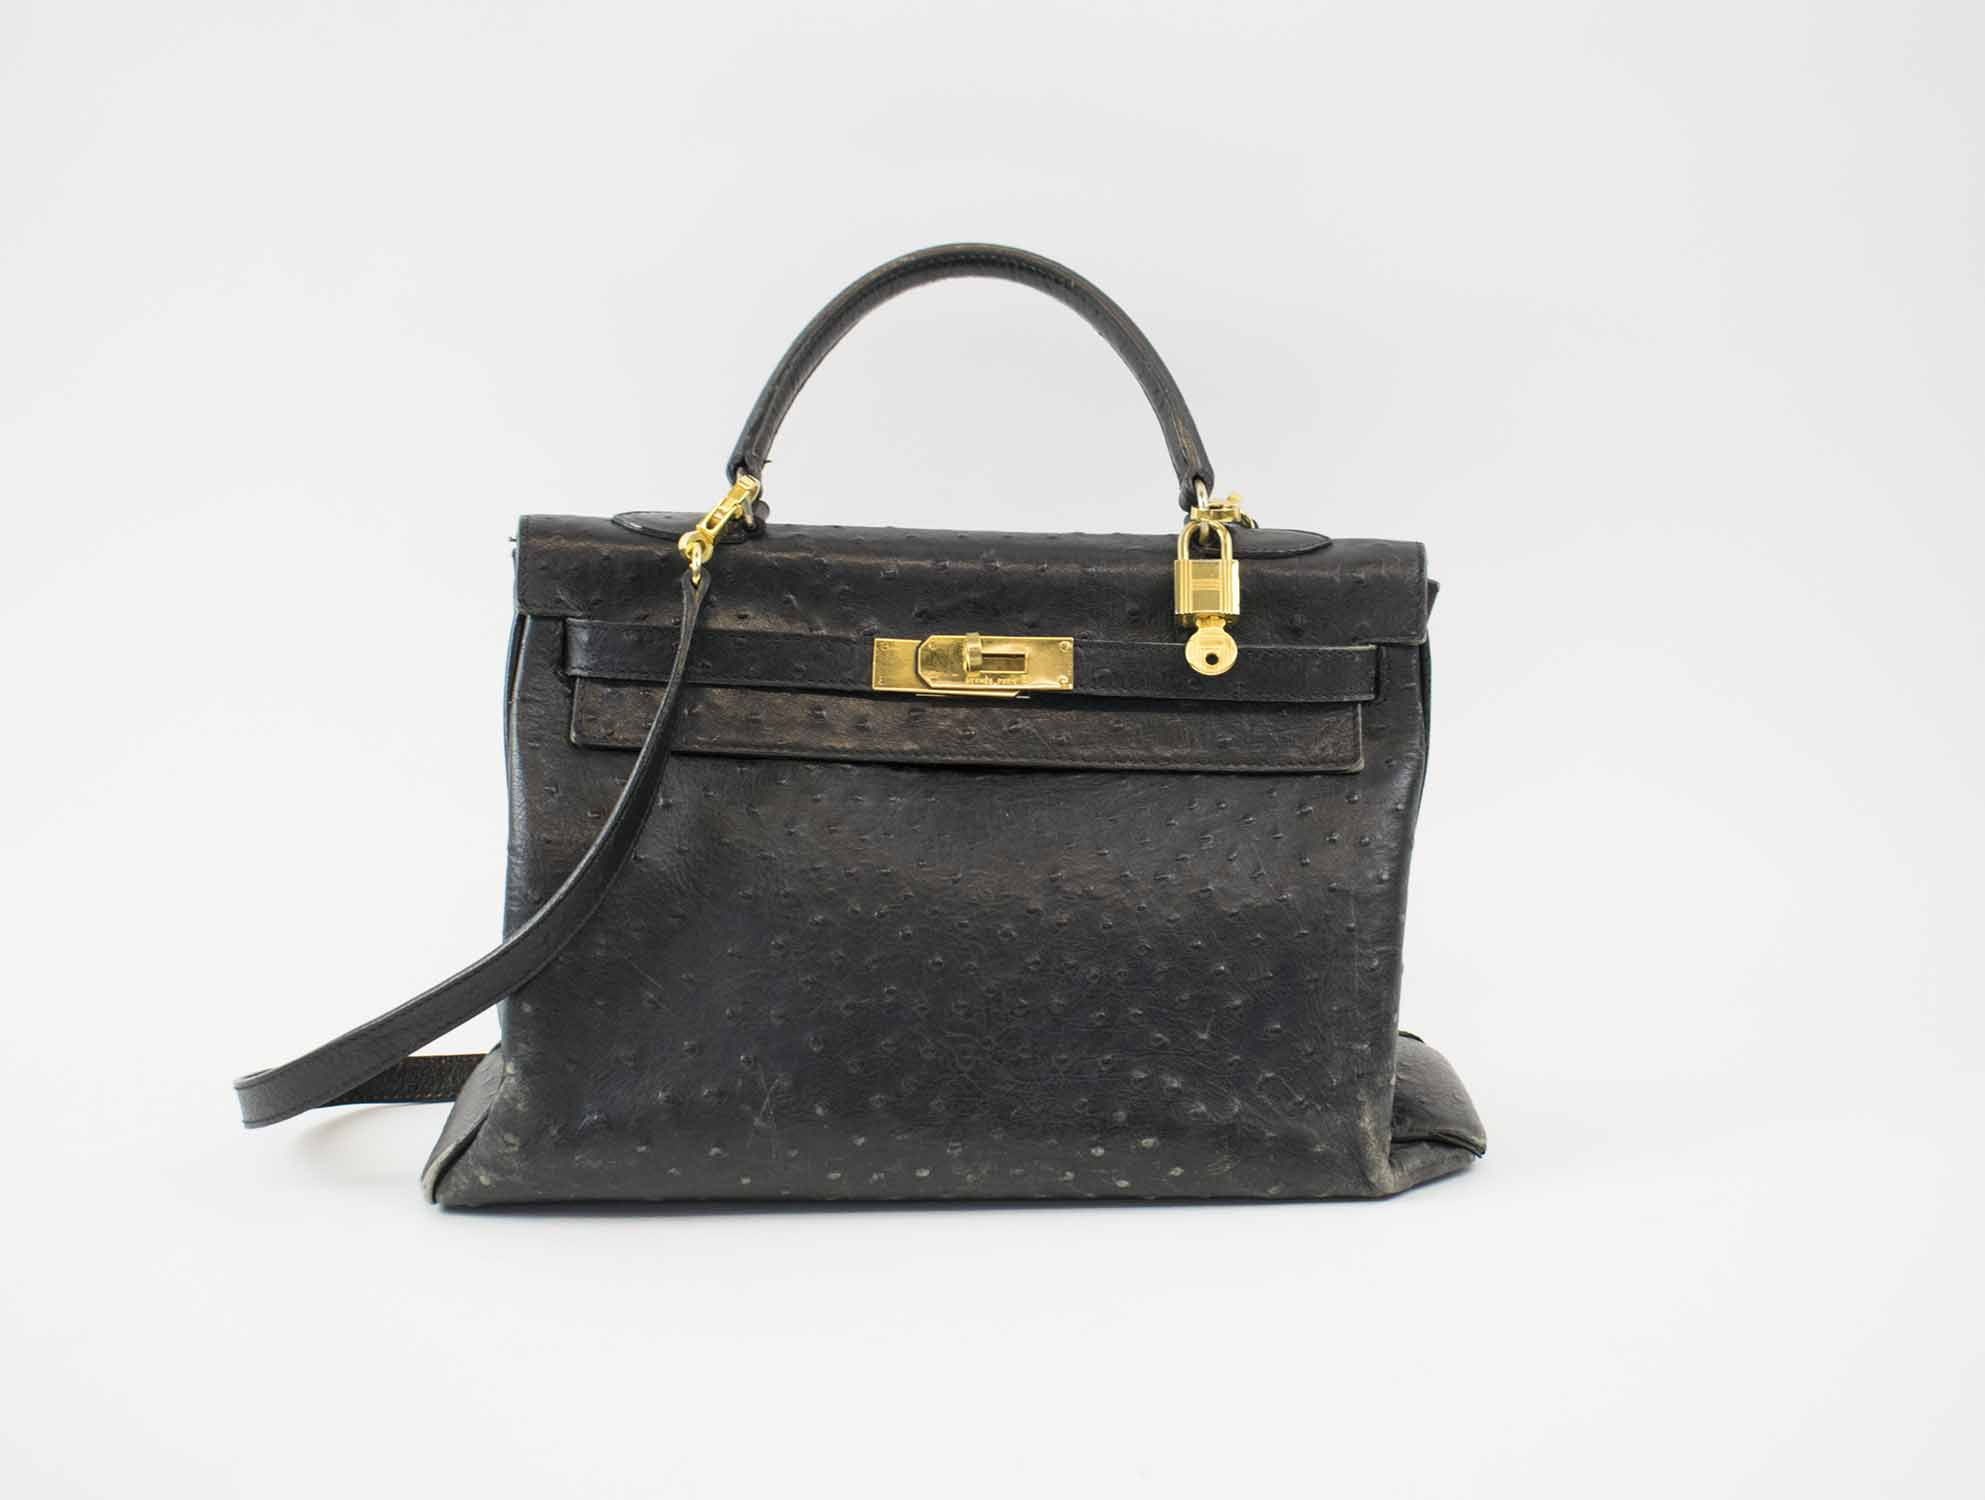 6fd6ba5dfdc7 HERMÈS KELLY OSTRICH 32 BAG, black leather with gold hardware ...